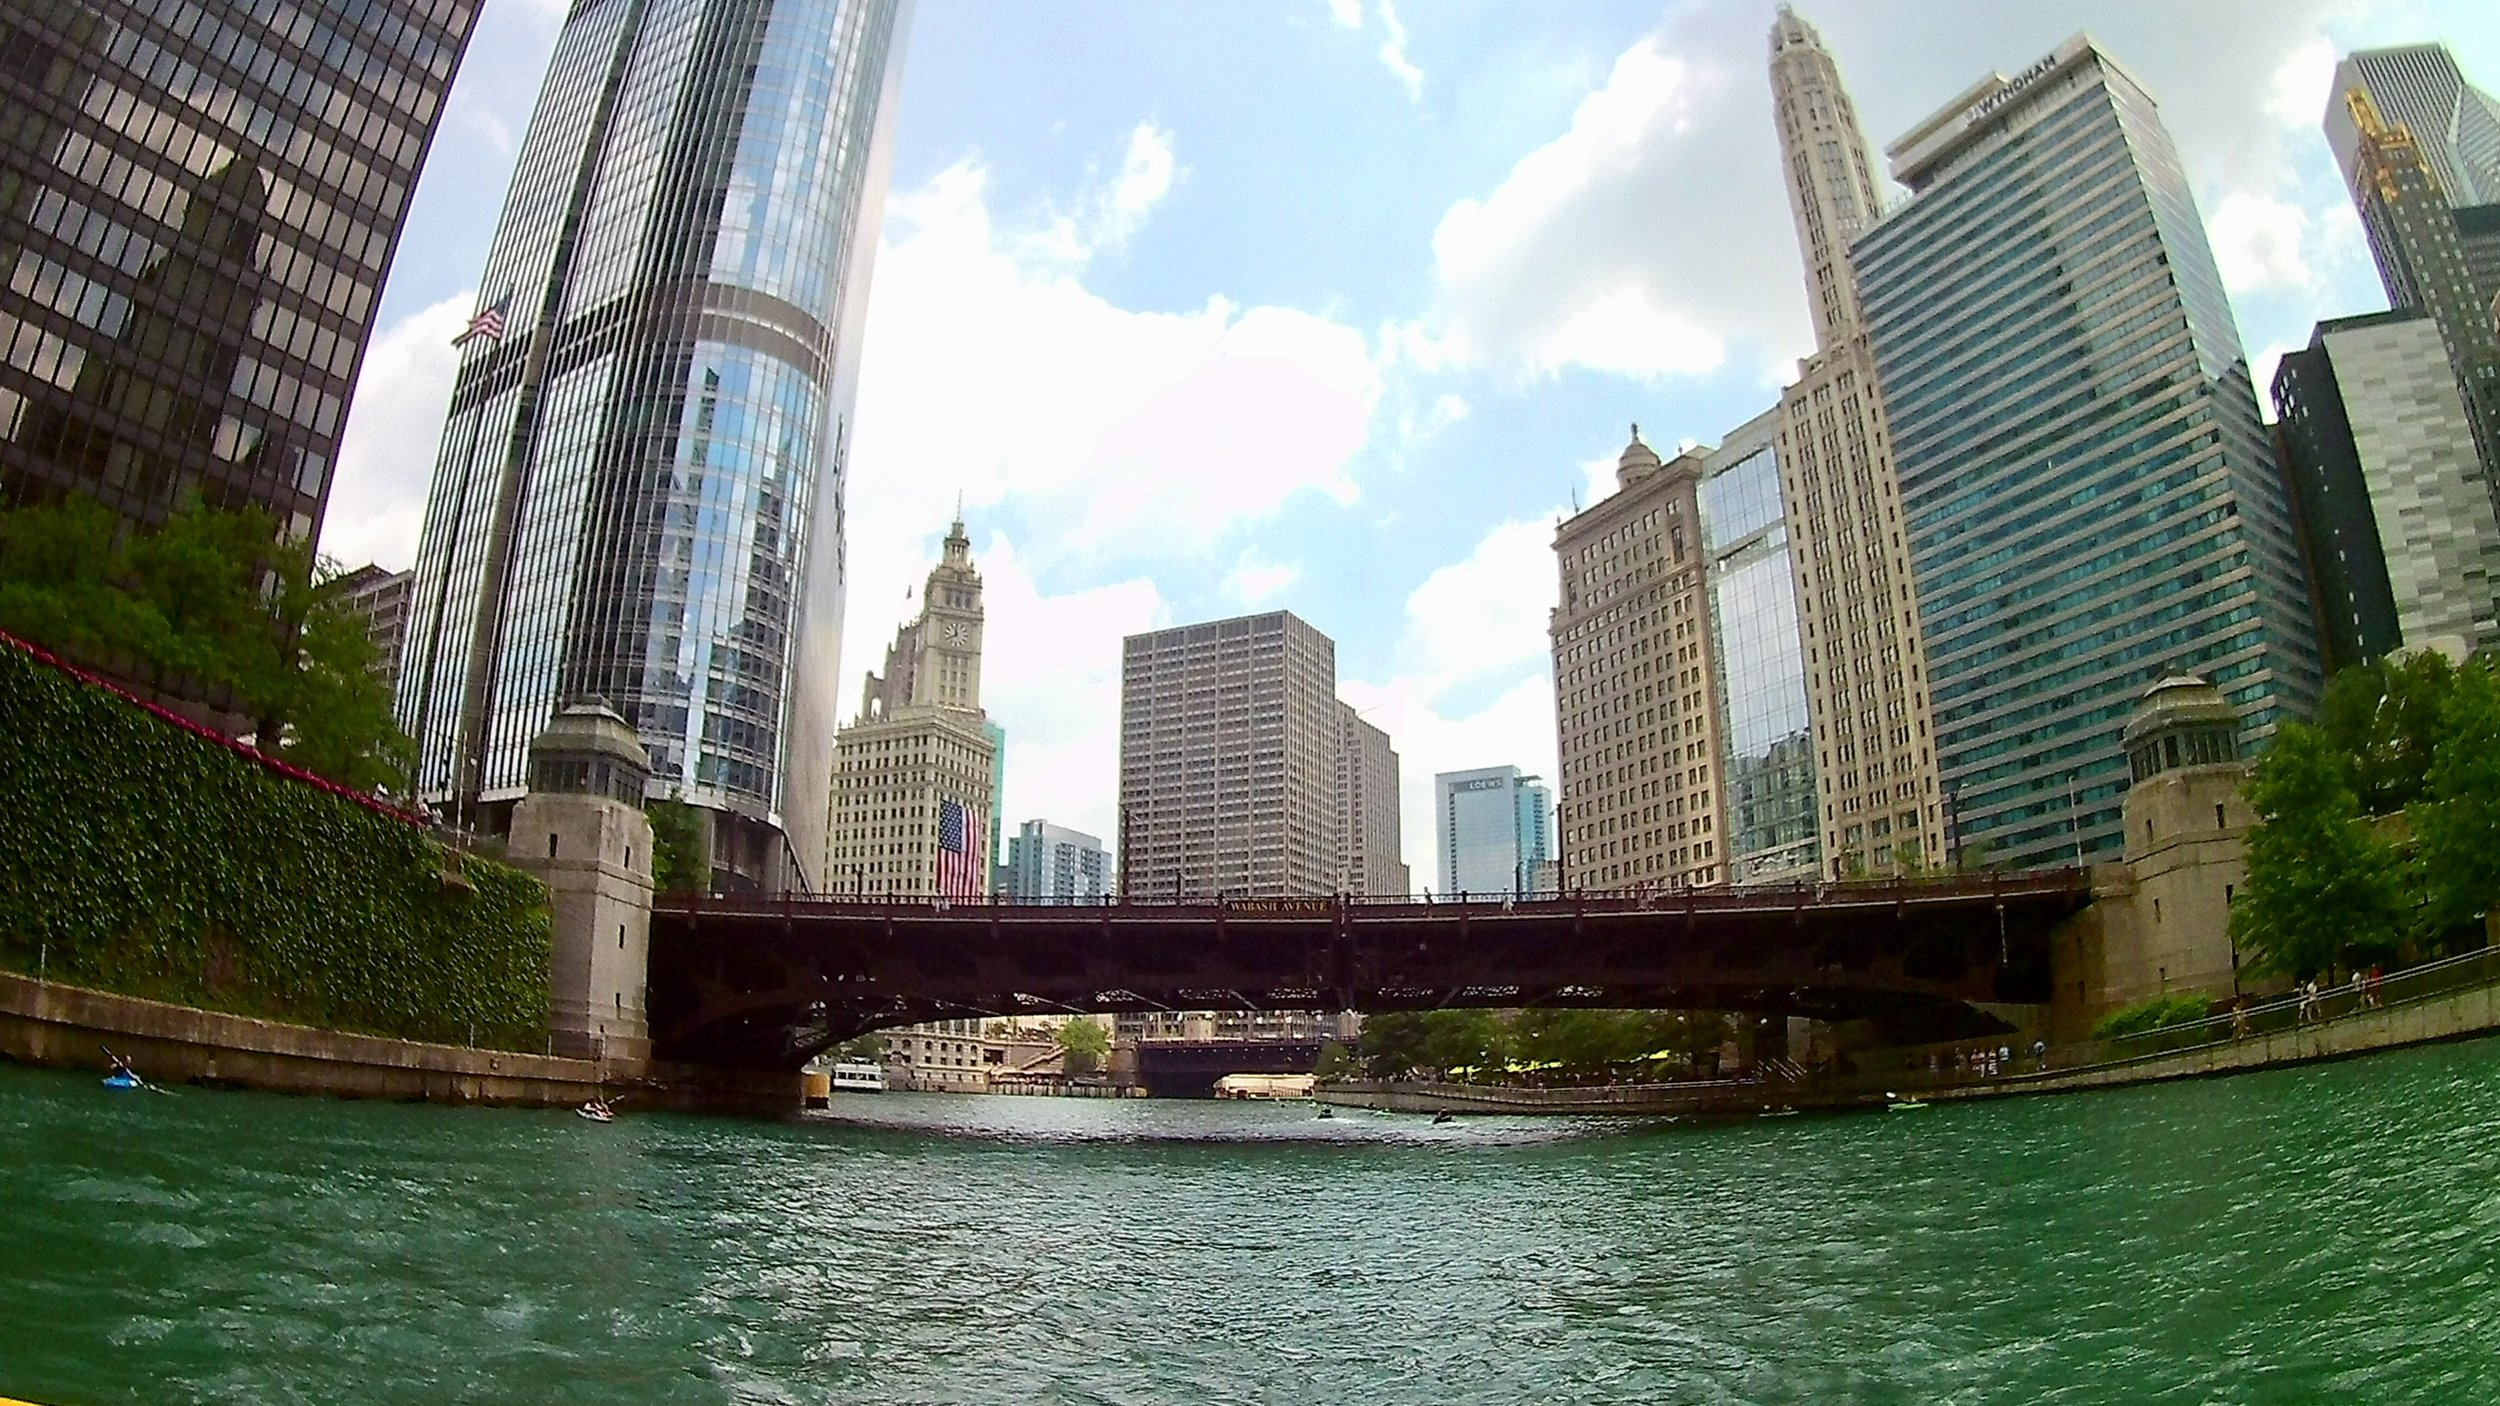 Heading east on the Chicago River